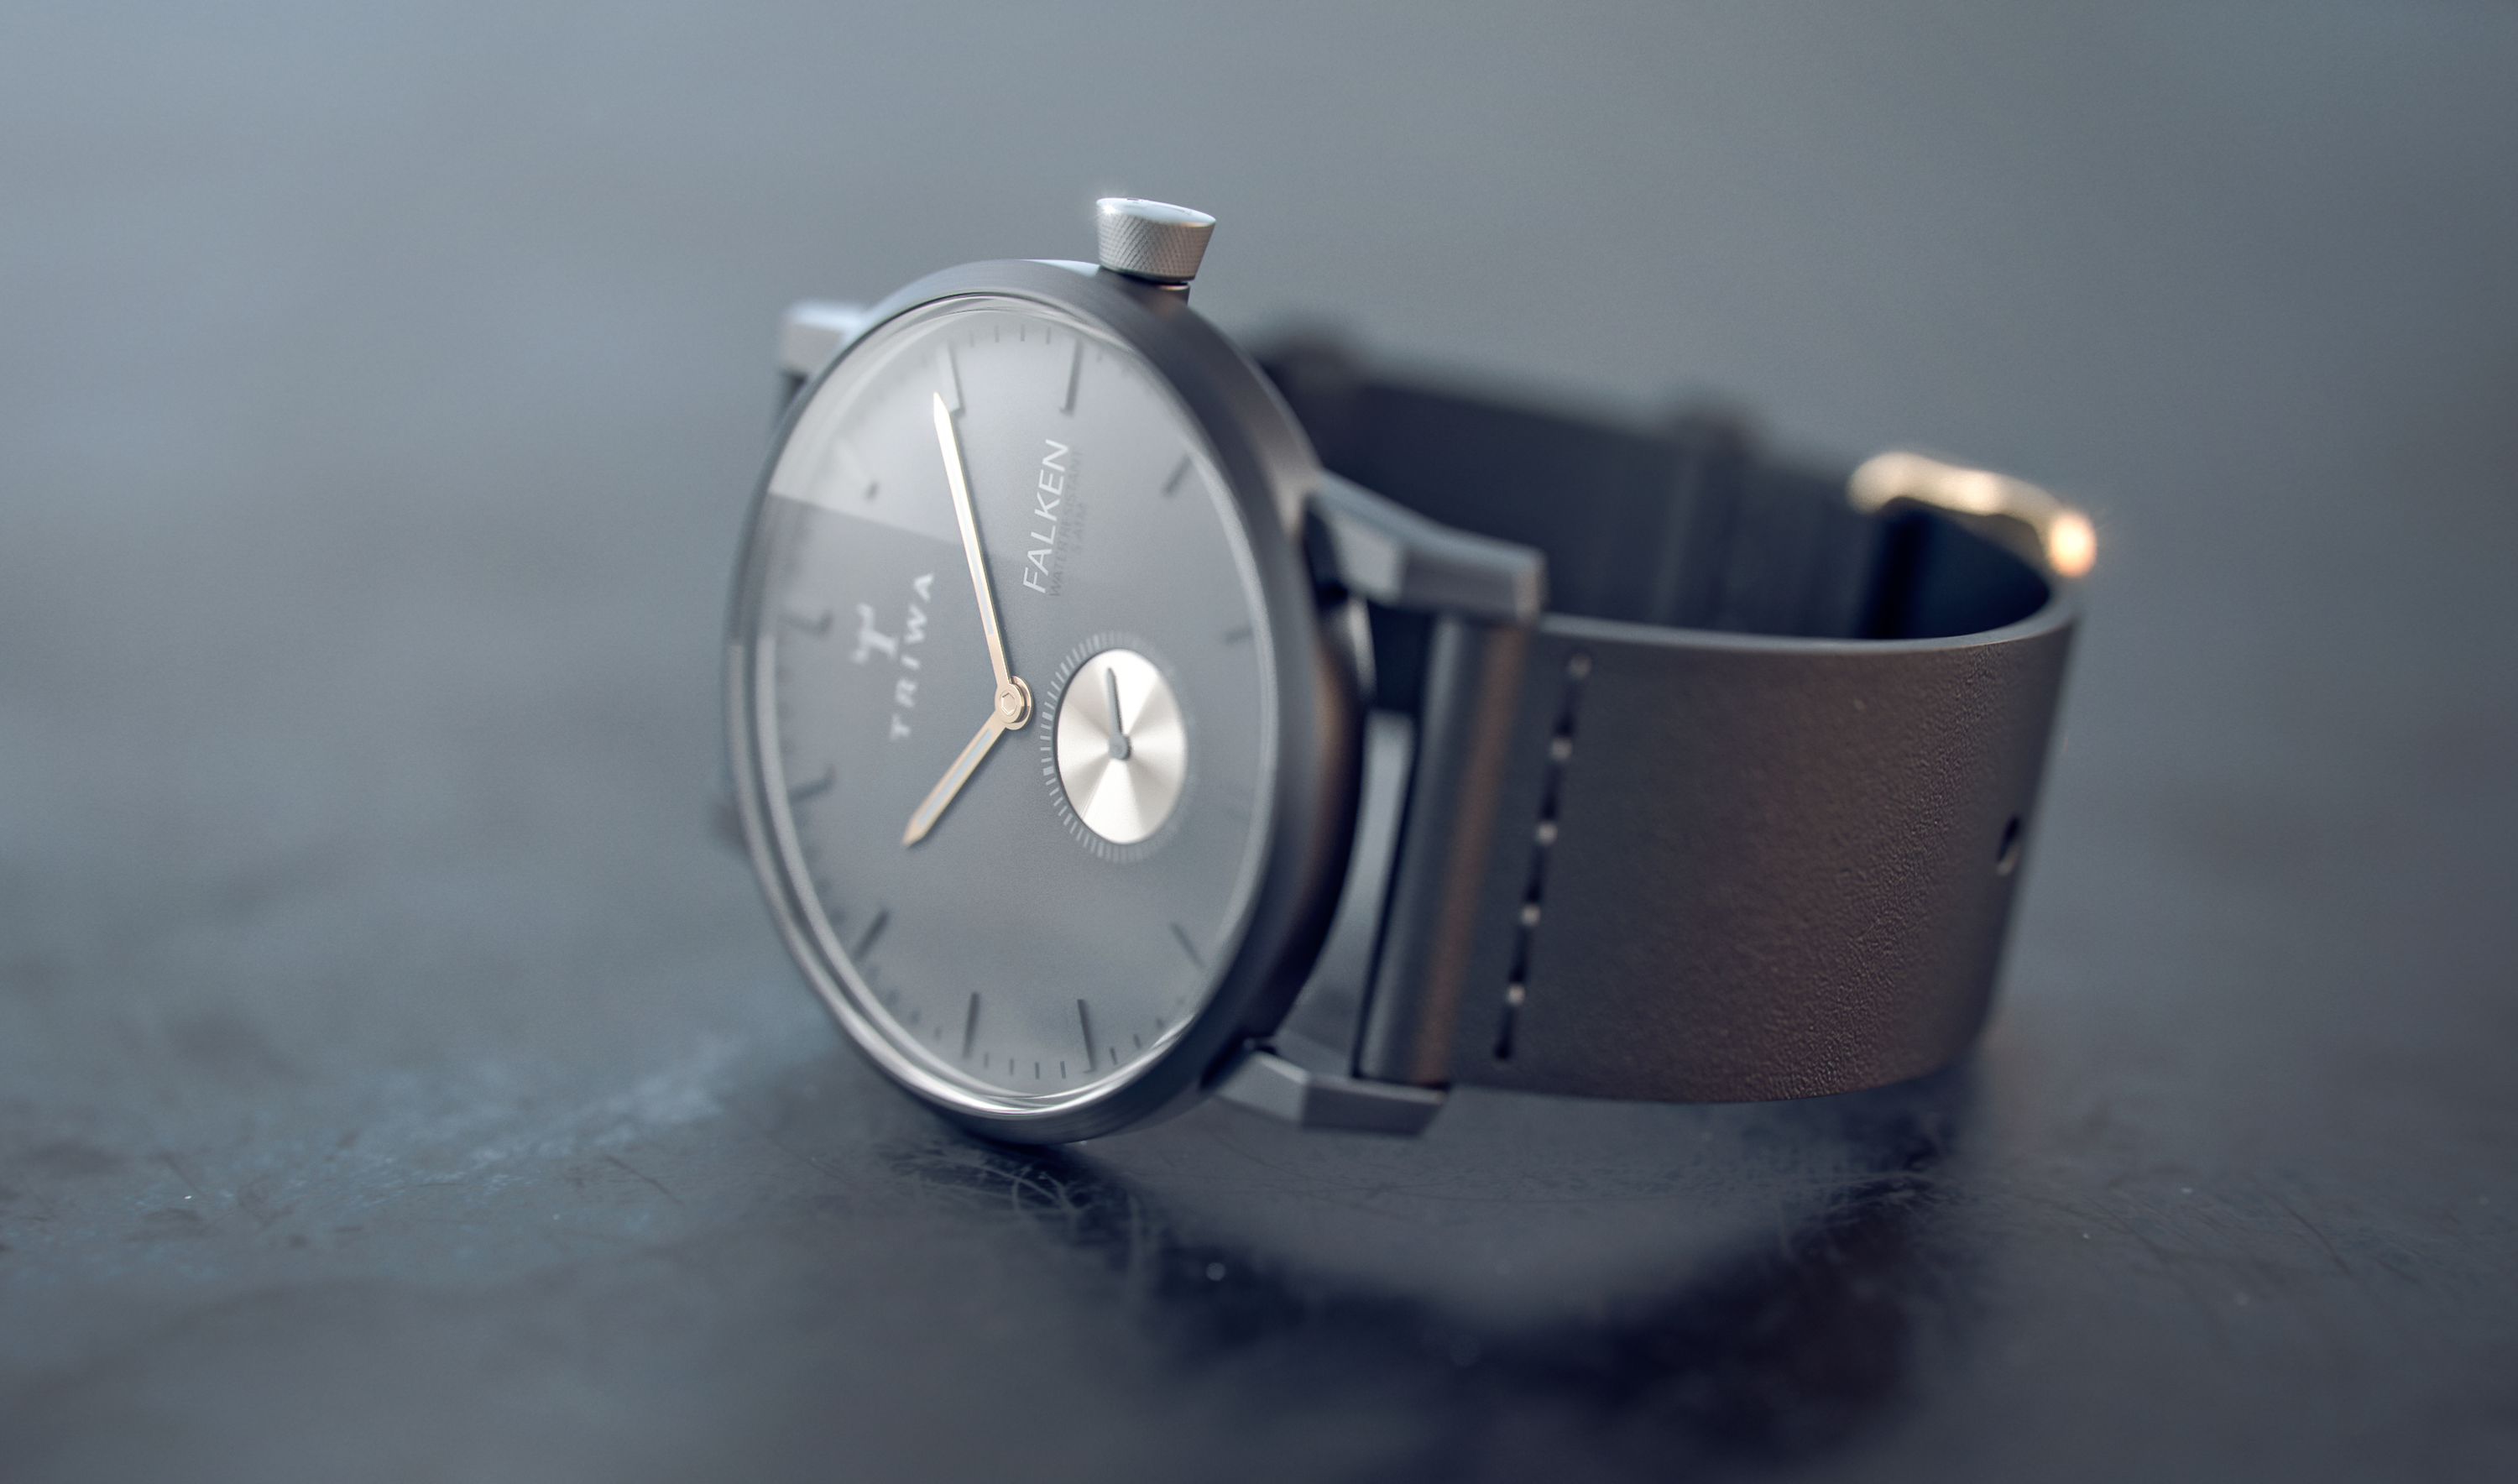 Triwa Falken watch, modeled in Rhino, rendered in KeyShot by